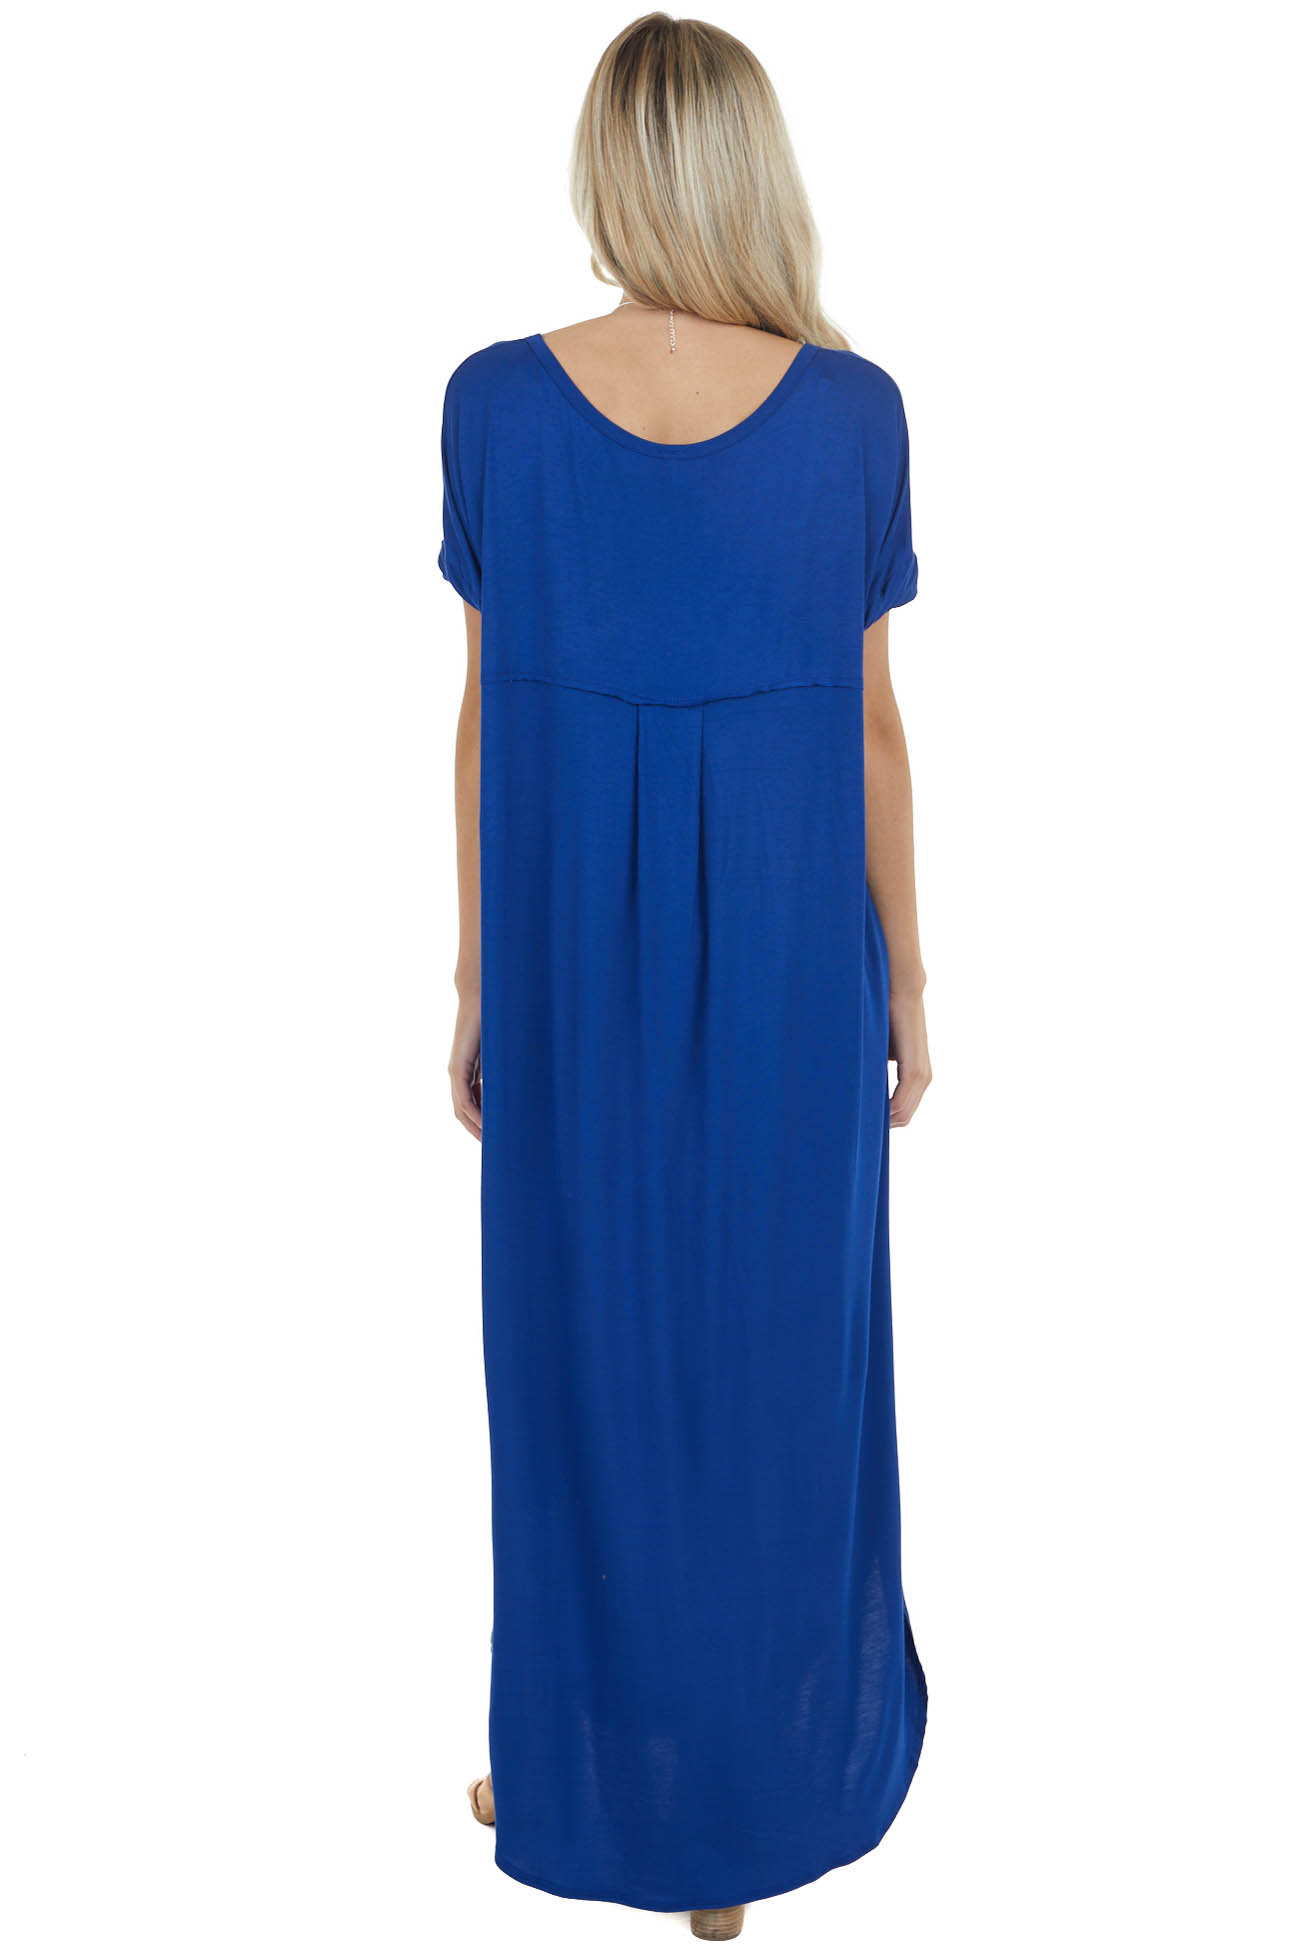 Royal Blue Maxi Dress with Side Slits and Side Pockets